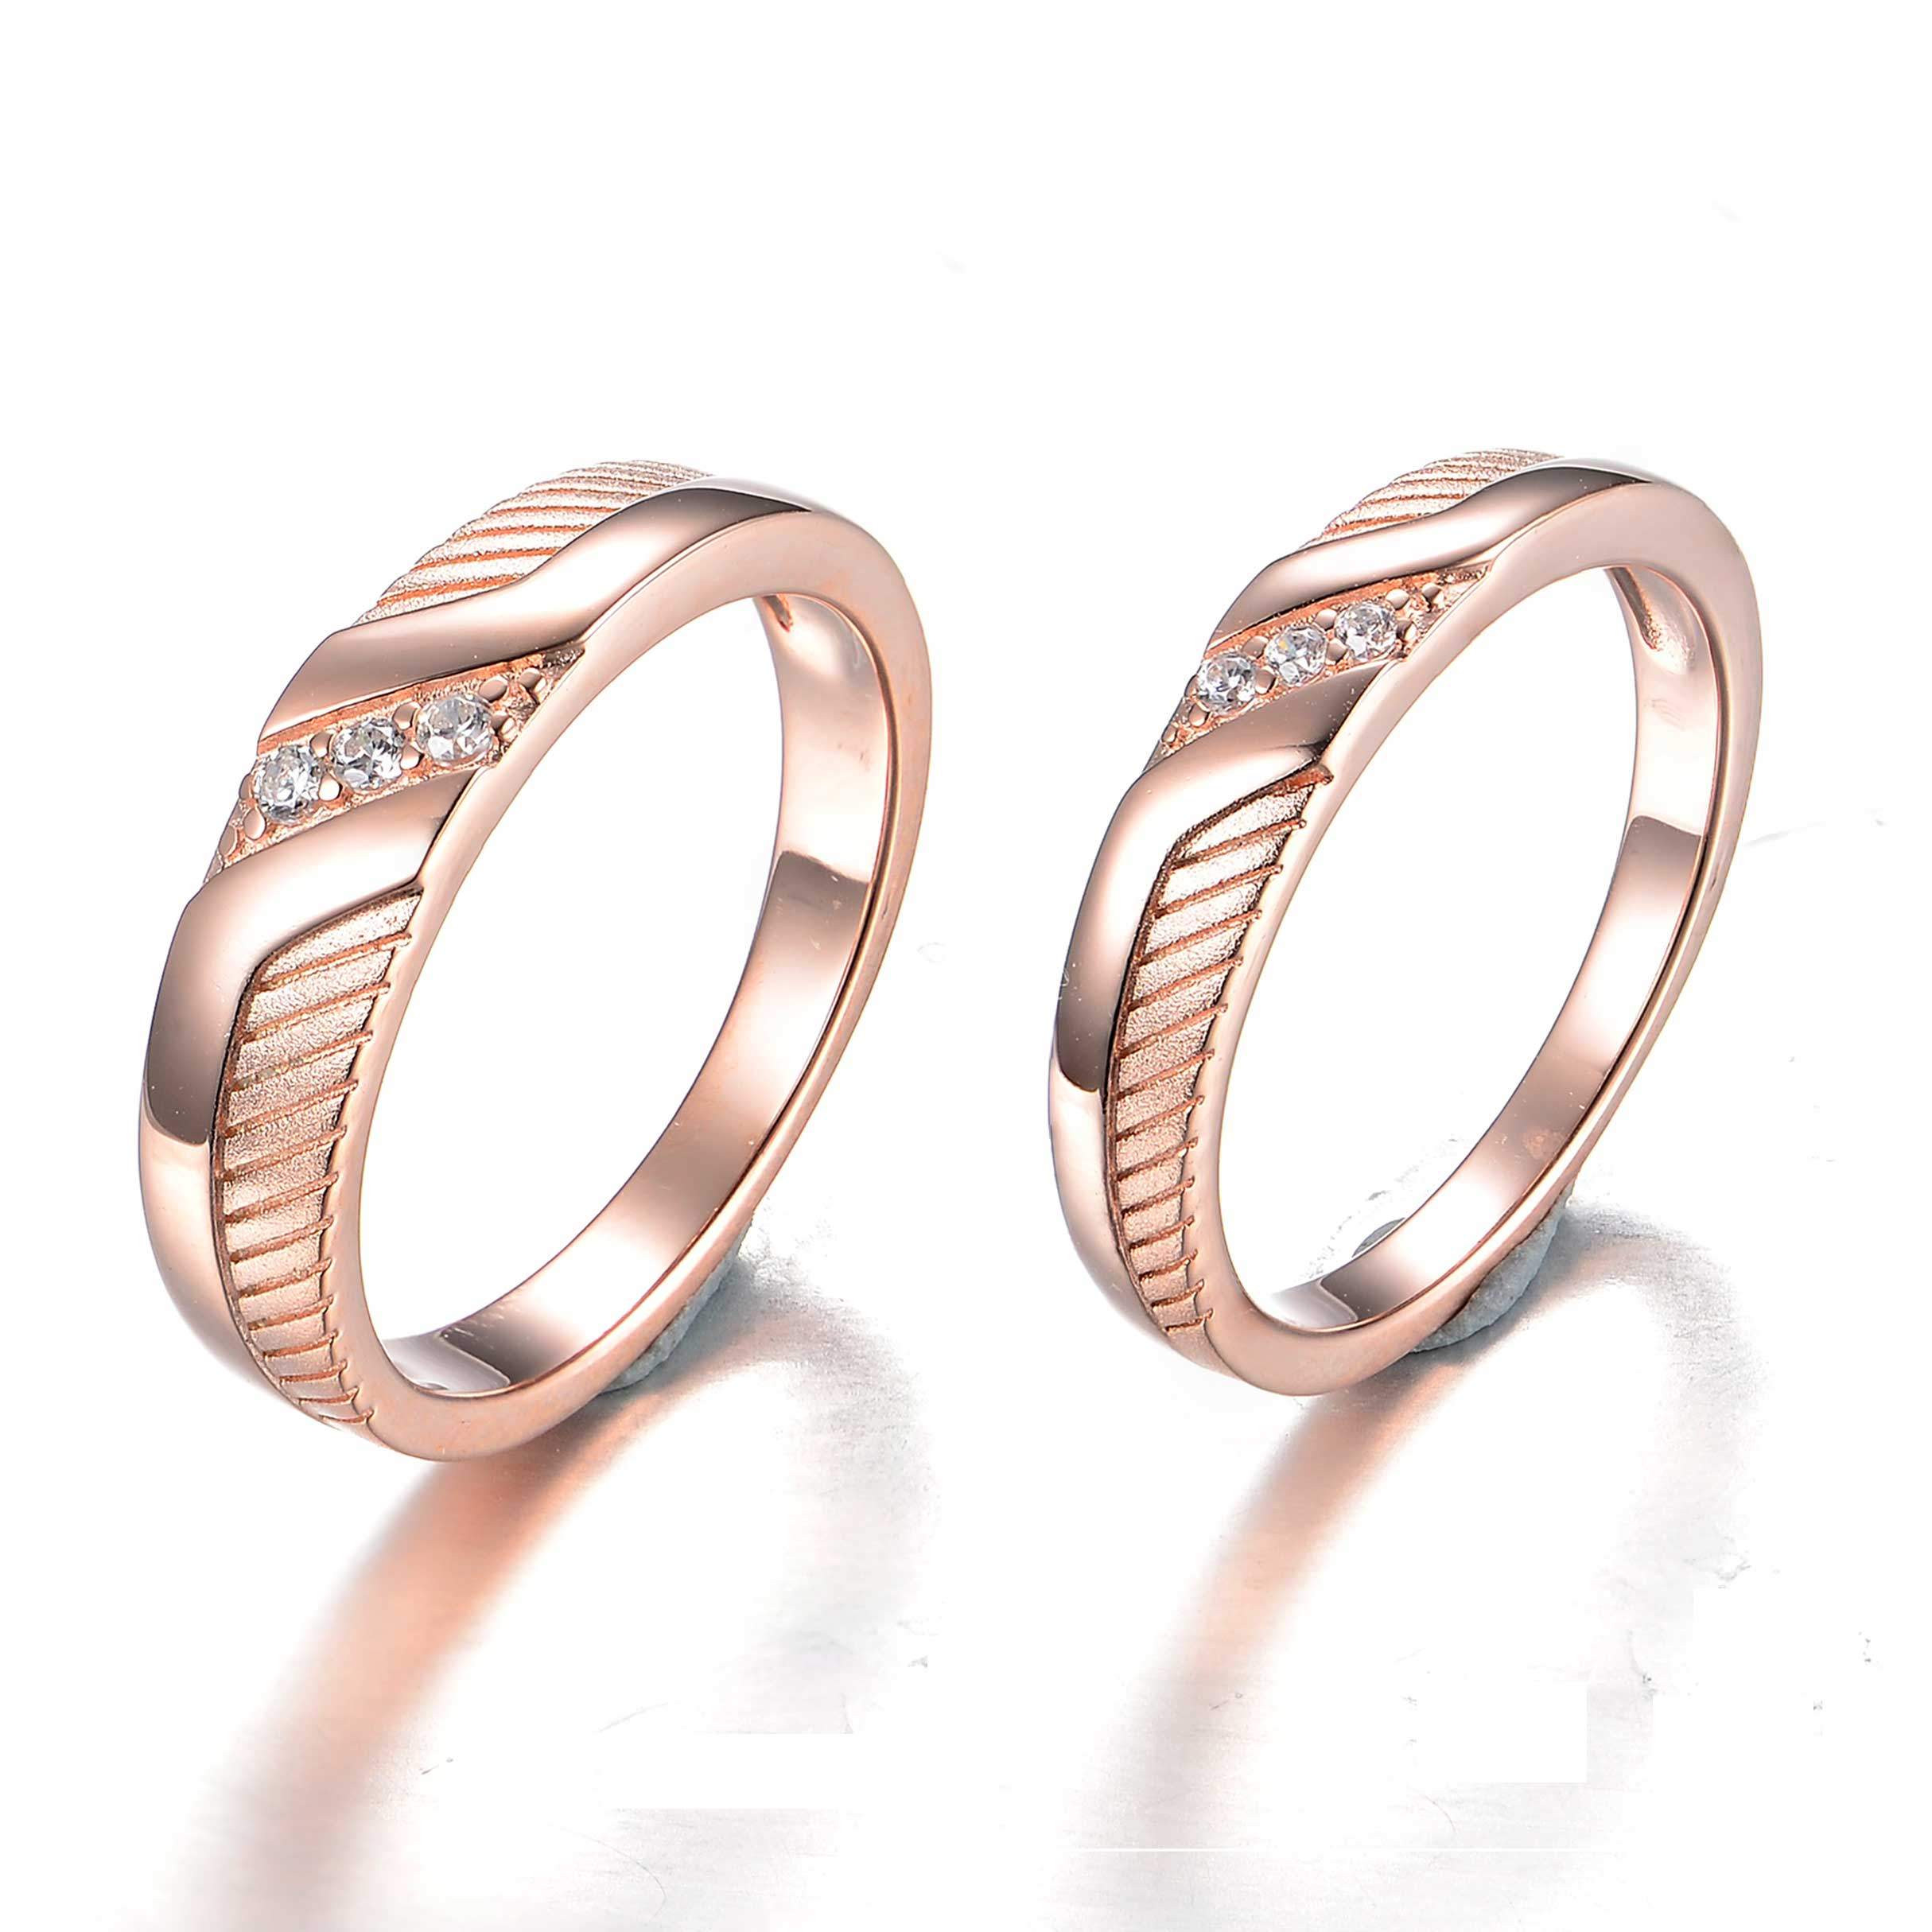 49eed63526 Fashion Women Wedding Ring Silver Rose Gold Plating Couple Ring Jewelry  Engagement Ring, View ring, lovans Product Details from Guangzhou Lovans  Jewelry Co. ...